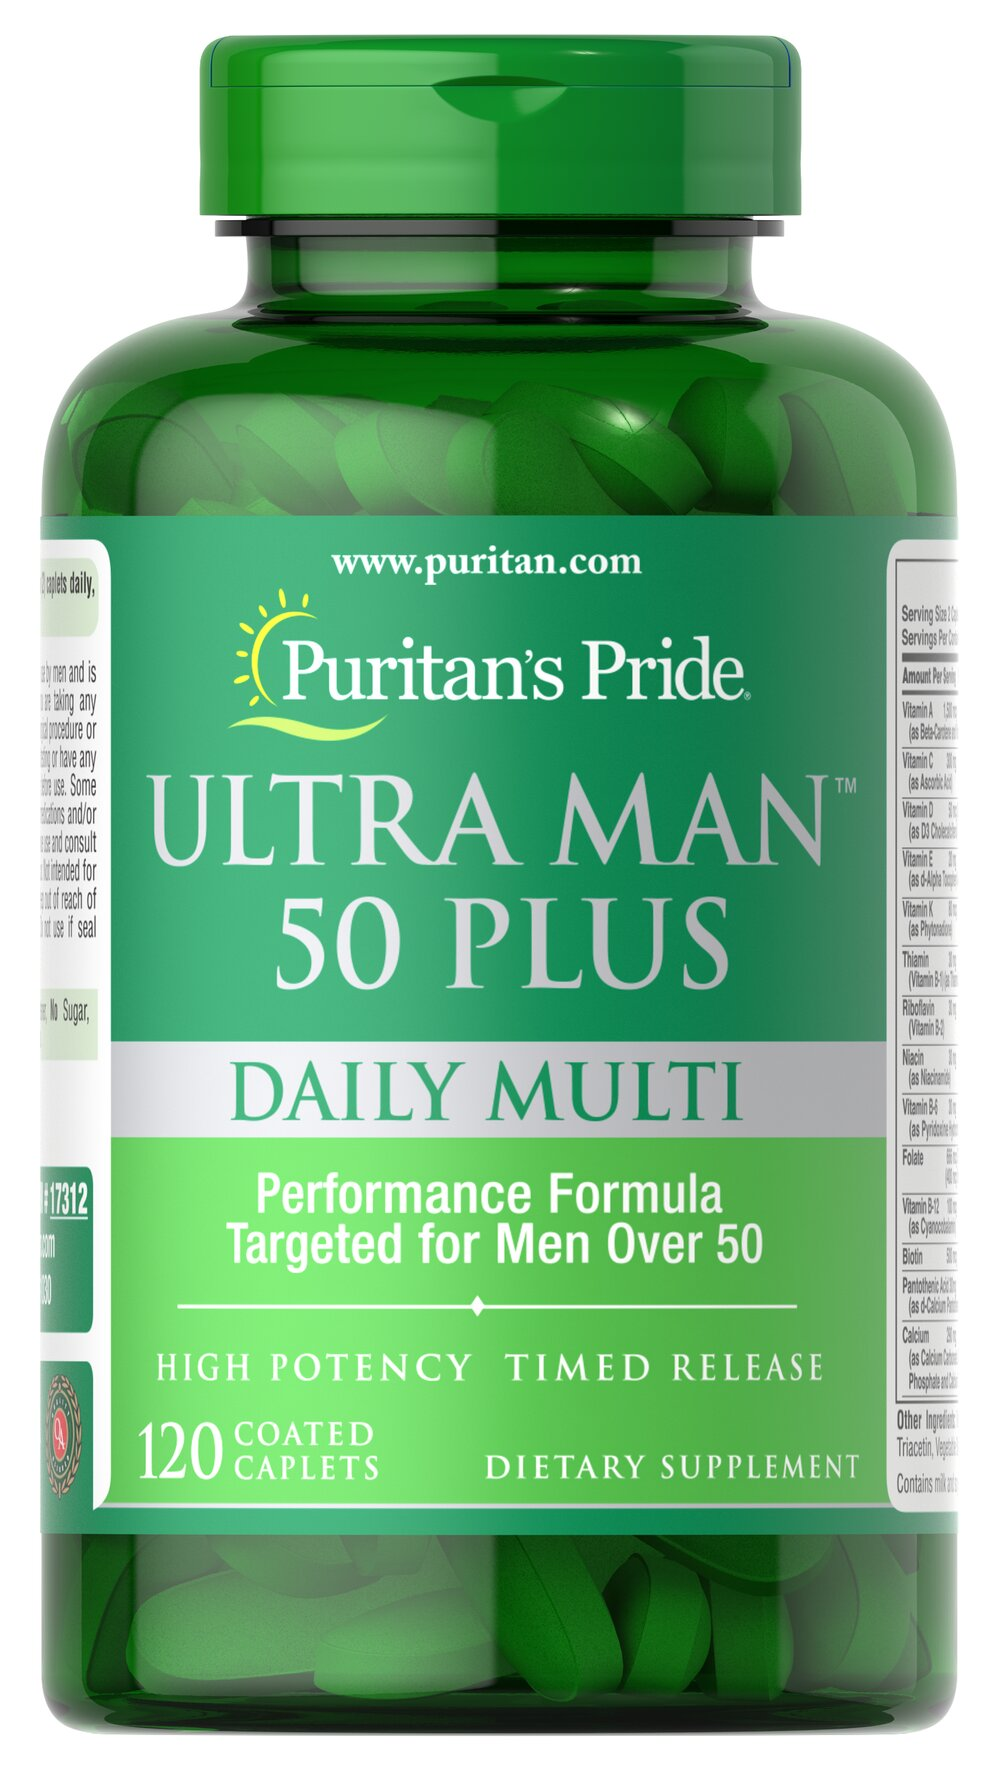 Ultra Vita Man™ 50 Plus • High performance multi with over 50 important nutrients for men's health**<br />• Created especially for men over 50<br />• Just two coated caplets a day<br />• Helps improve memory, especially occasional mild memory problems associated with aging**<br />• Features Zinc, an important mineral that contributes to normal semen production and sexual health** 120 Caplets  $29.99